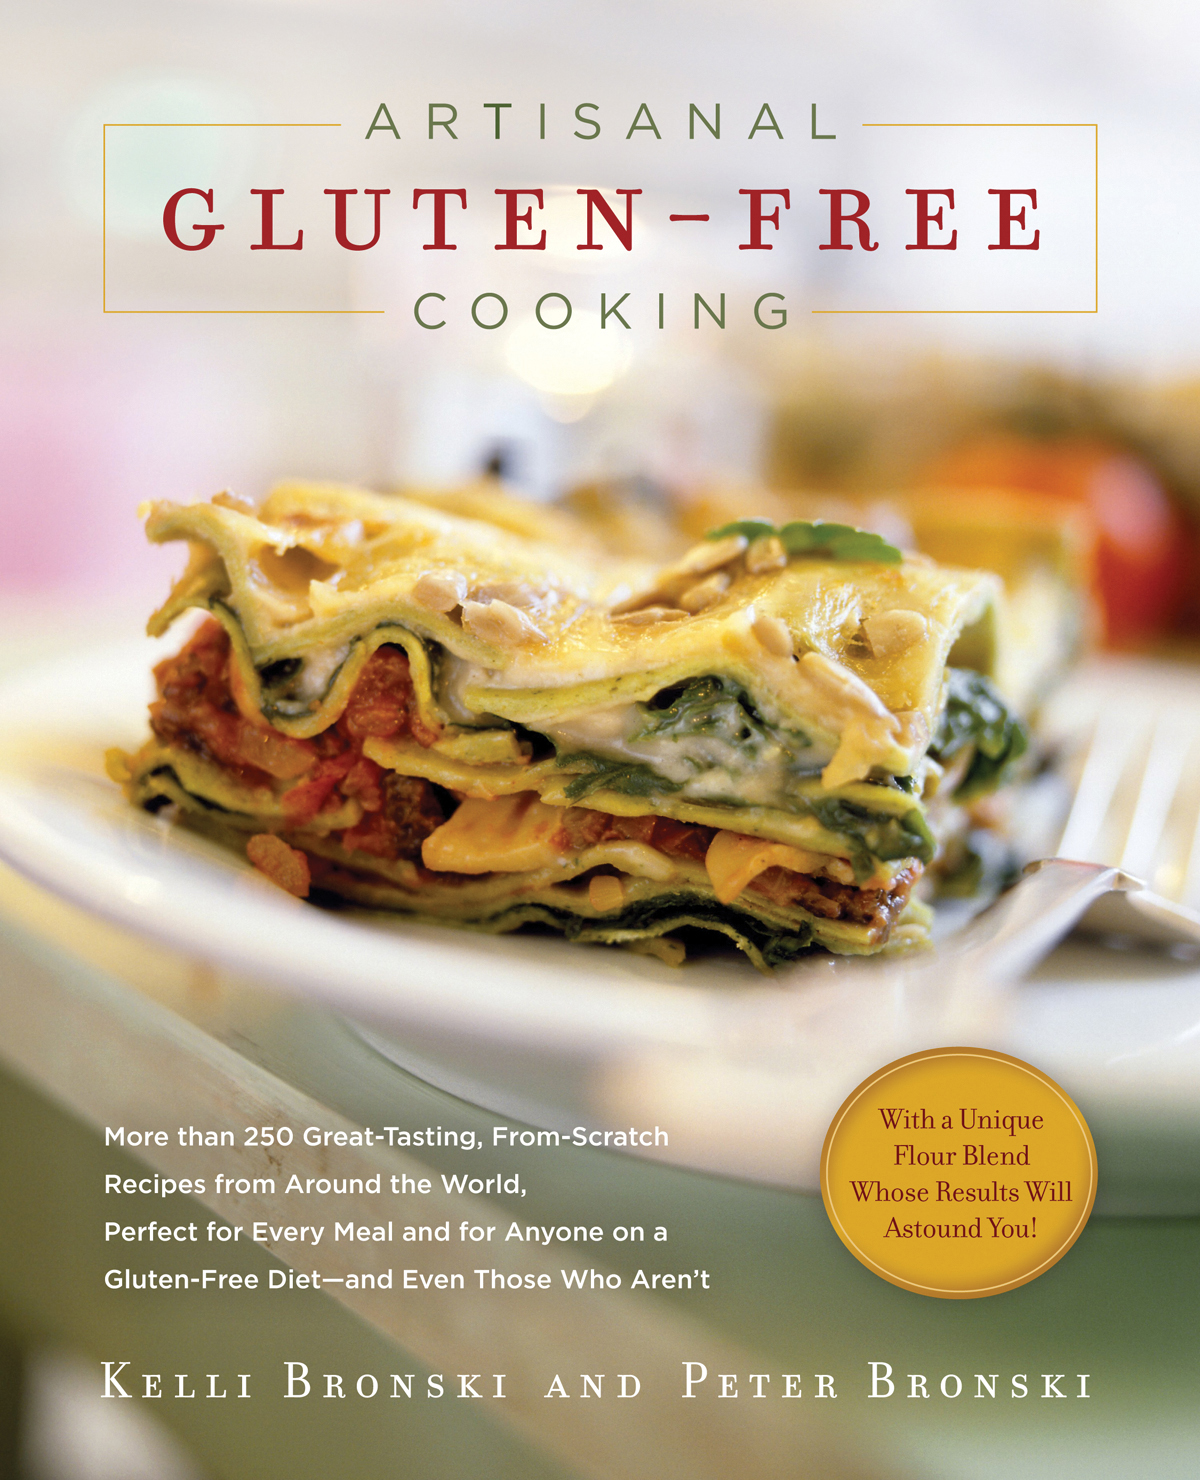 Cover image for Artisanal Gluten-Free Cooking [electronic resource] : More than 250 Great-Tasting, From-Scratch Recipes from Around the World, Perfect for Every Meal and for Anyone on a Gluten-Free Diet—and Even Those Who Aren't